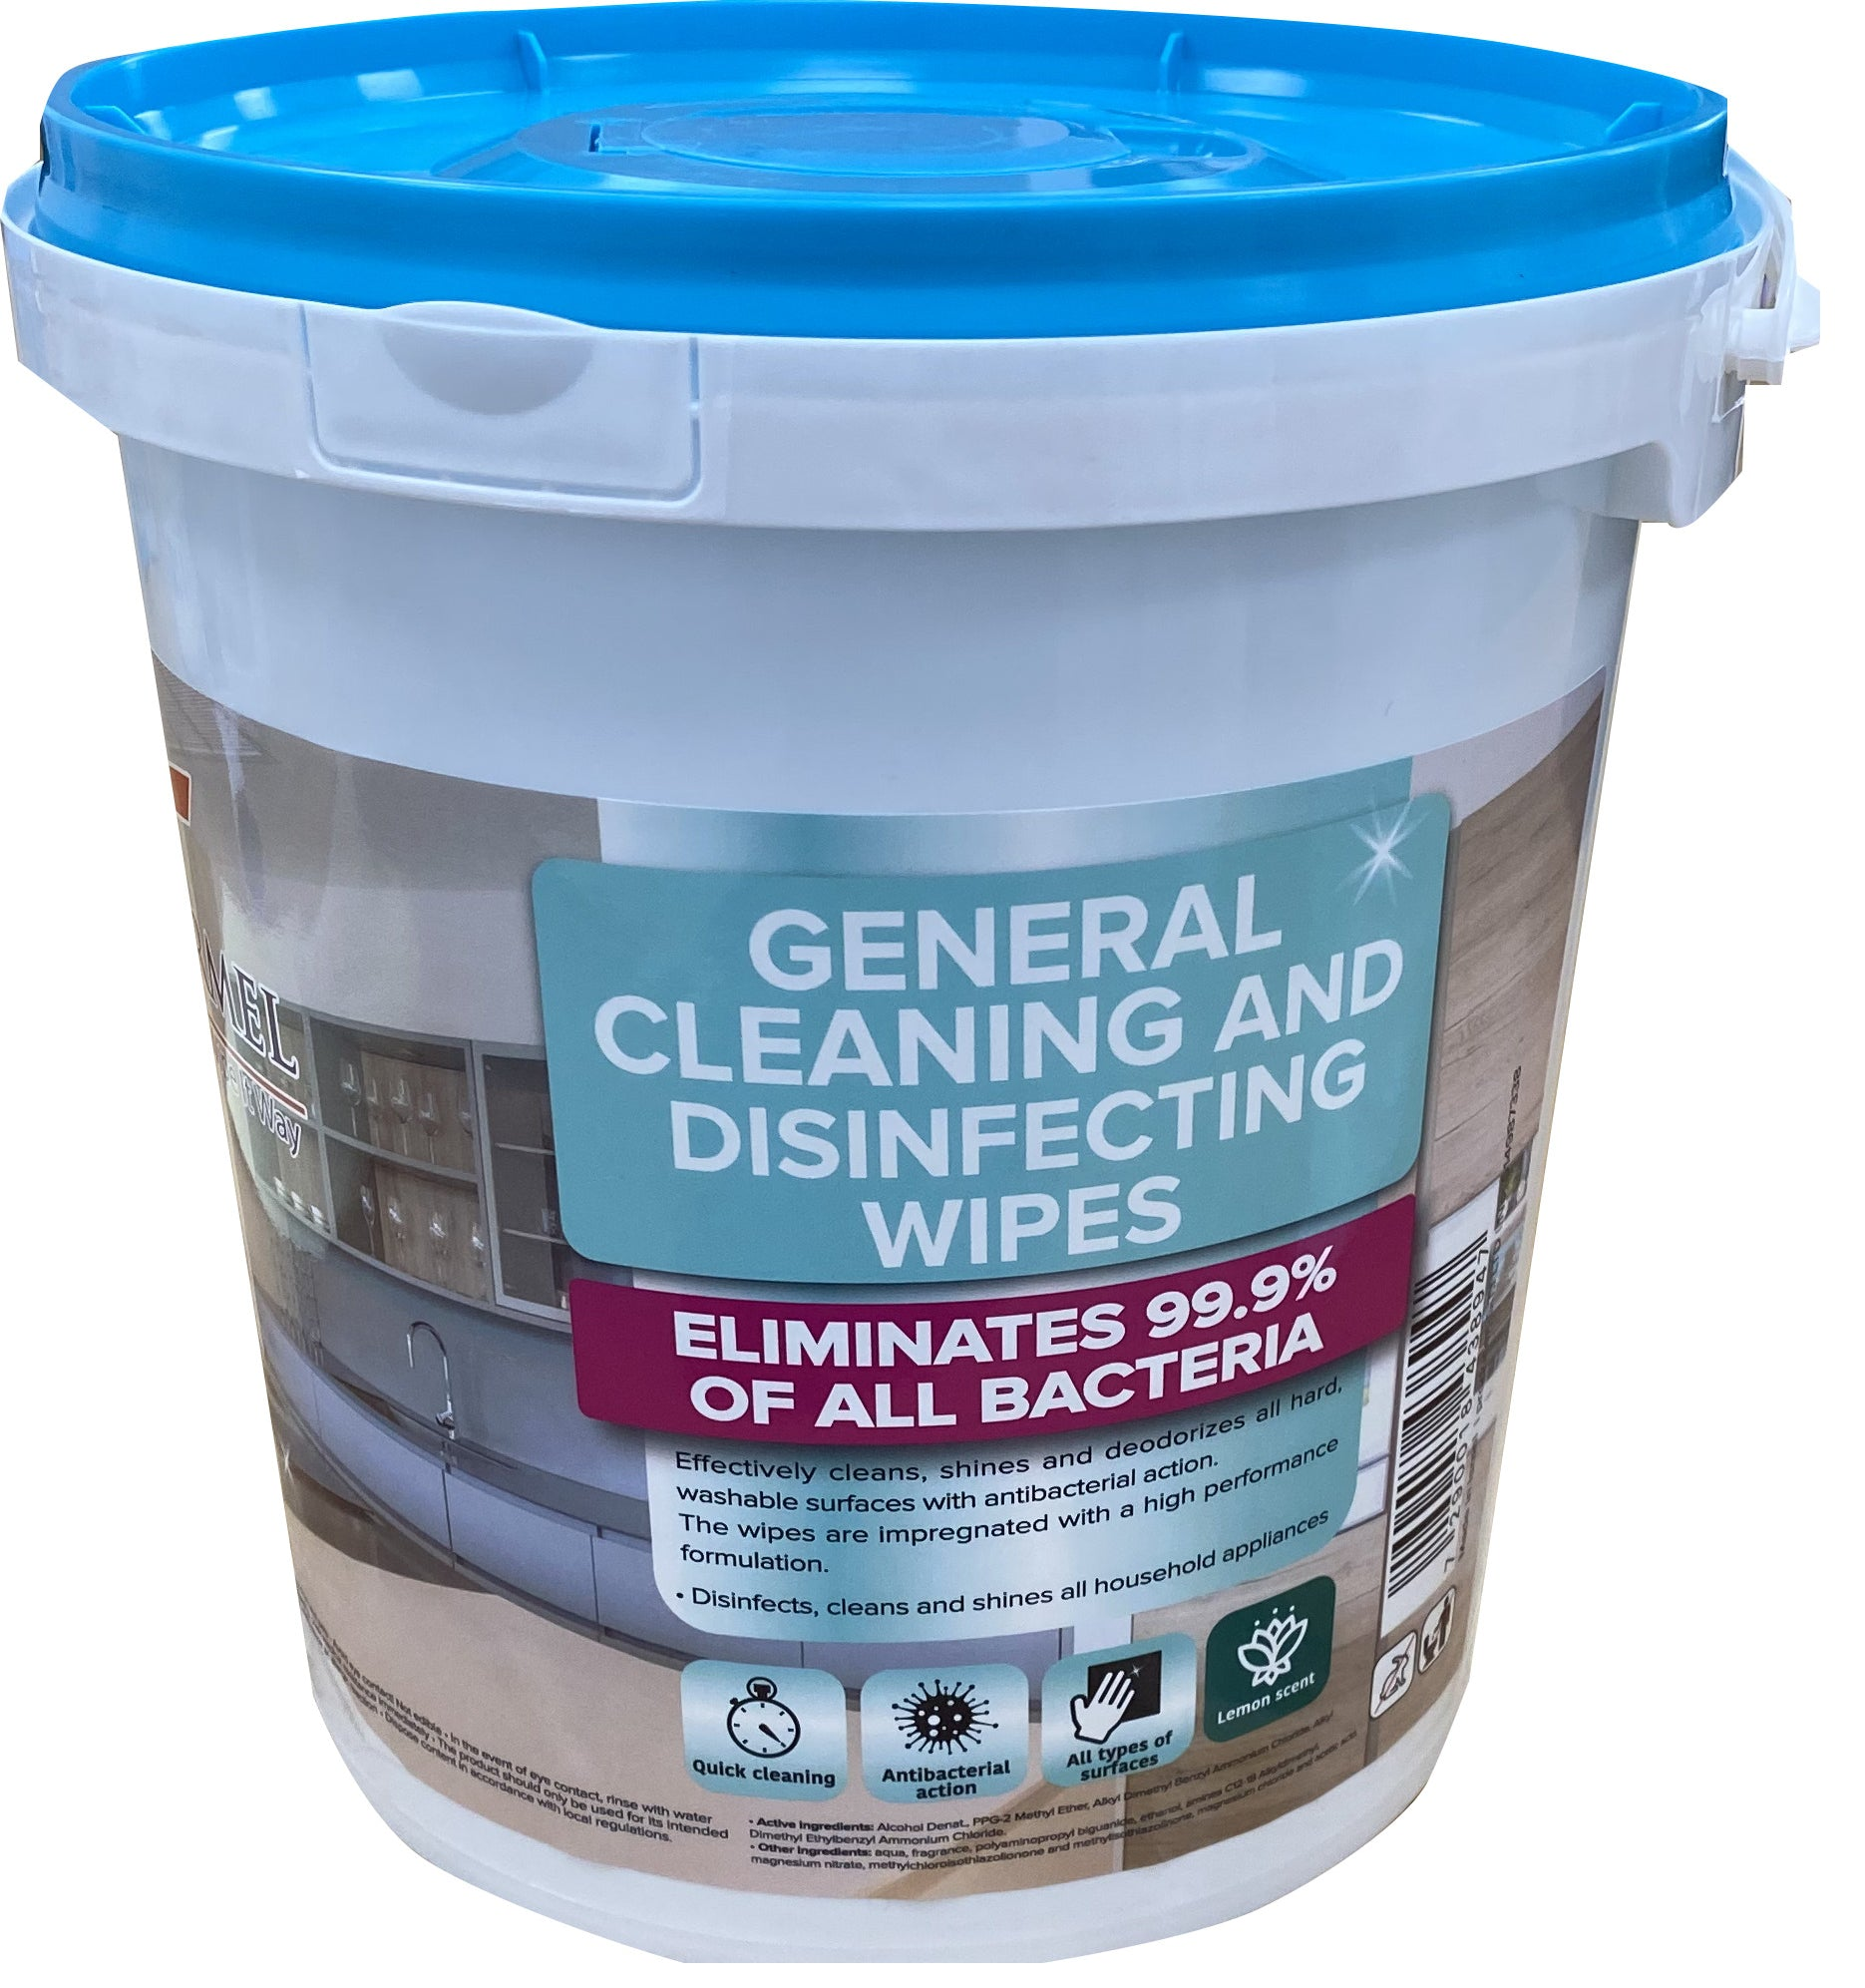 400 Disinfecting wipes - same chemicals as Clorox wipes - 1 bucket of 400 wipes - Brooklyn Equipment